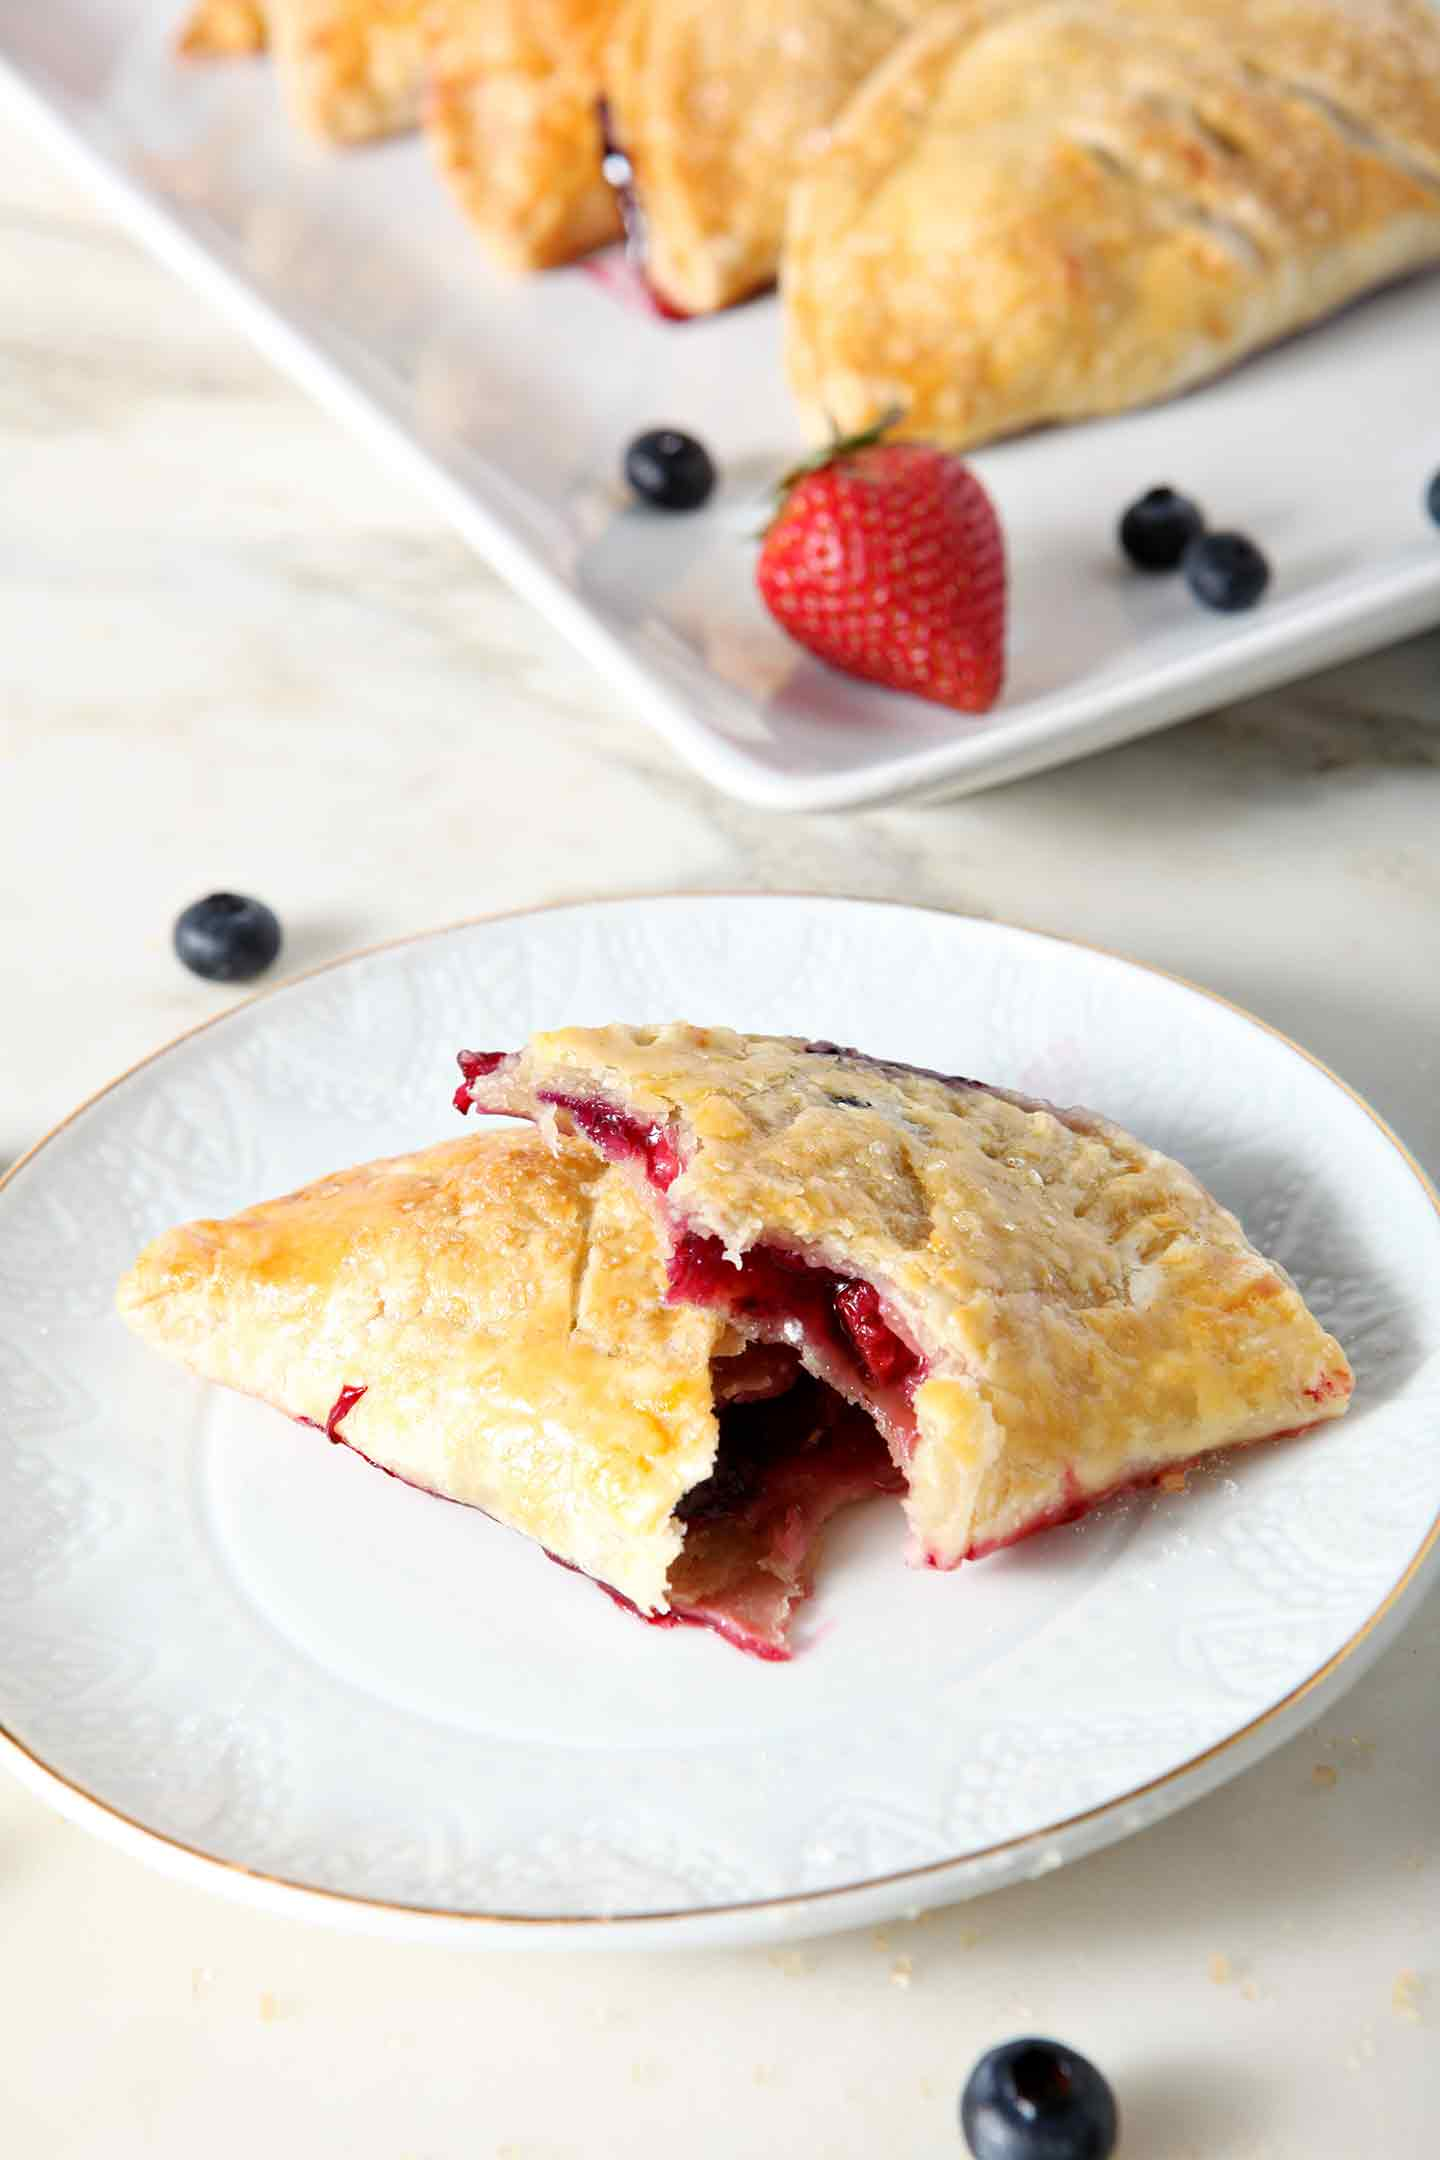 A Strawberry and Blueberry Hand Pie, broken in half, sits on a white dessert plate, with a platter of additional hand pies behind it.